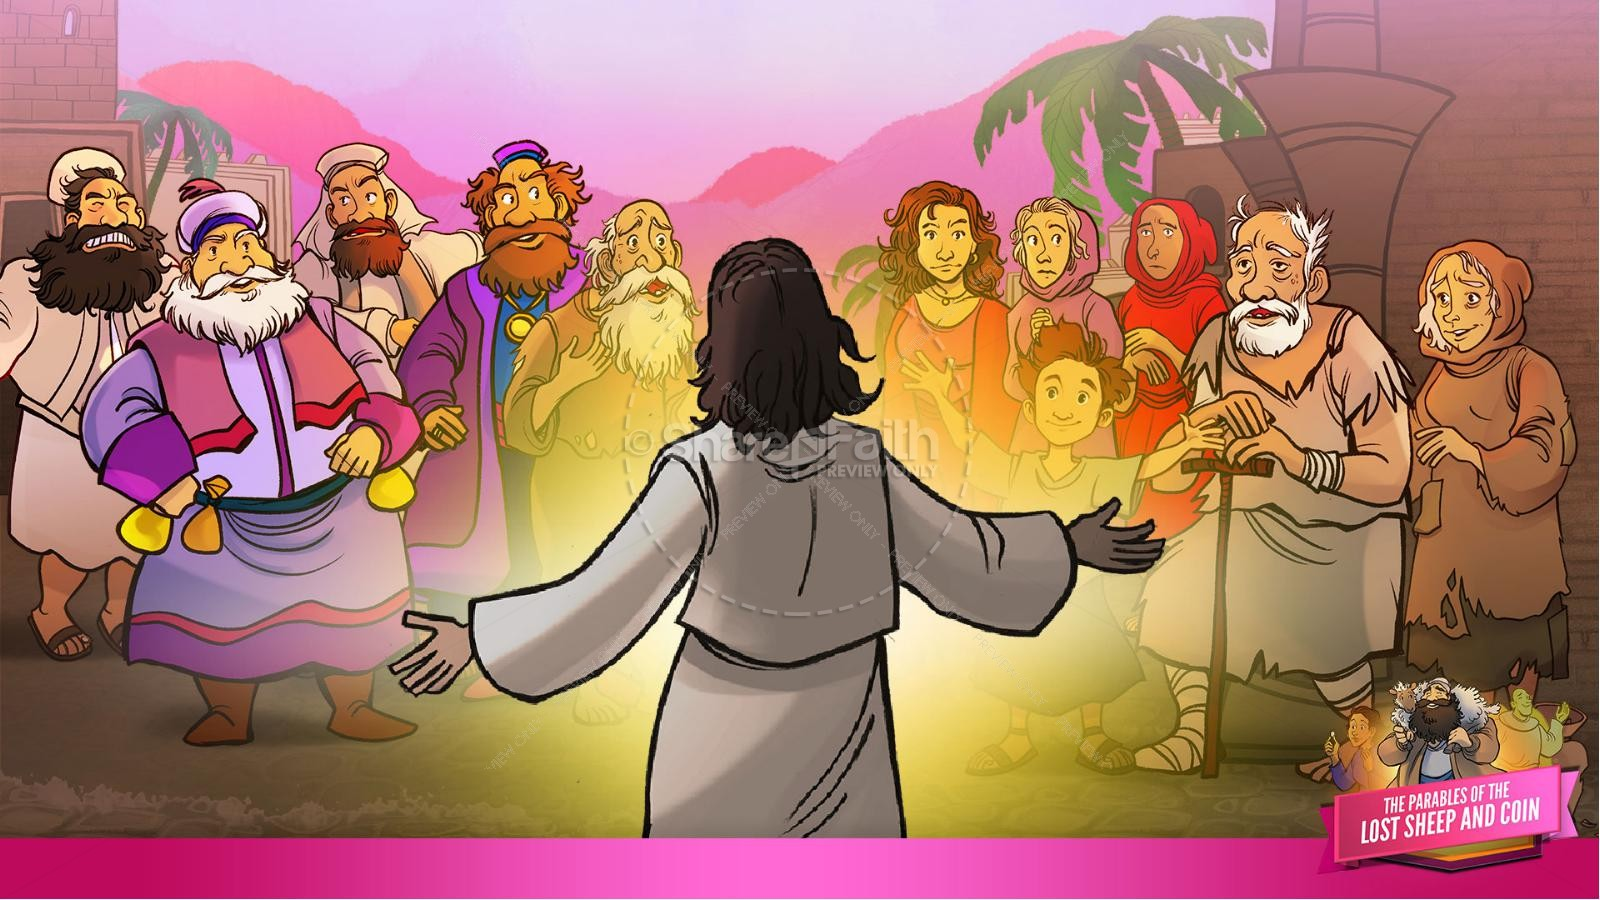 Luke 15 The Parables of the Lost Sheep and Coin Kids Bible Story | slide 10